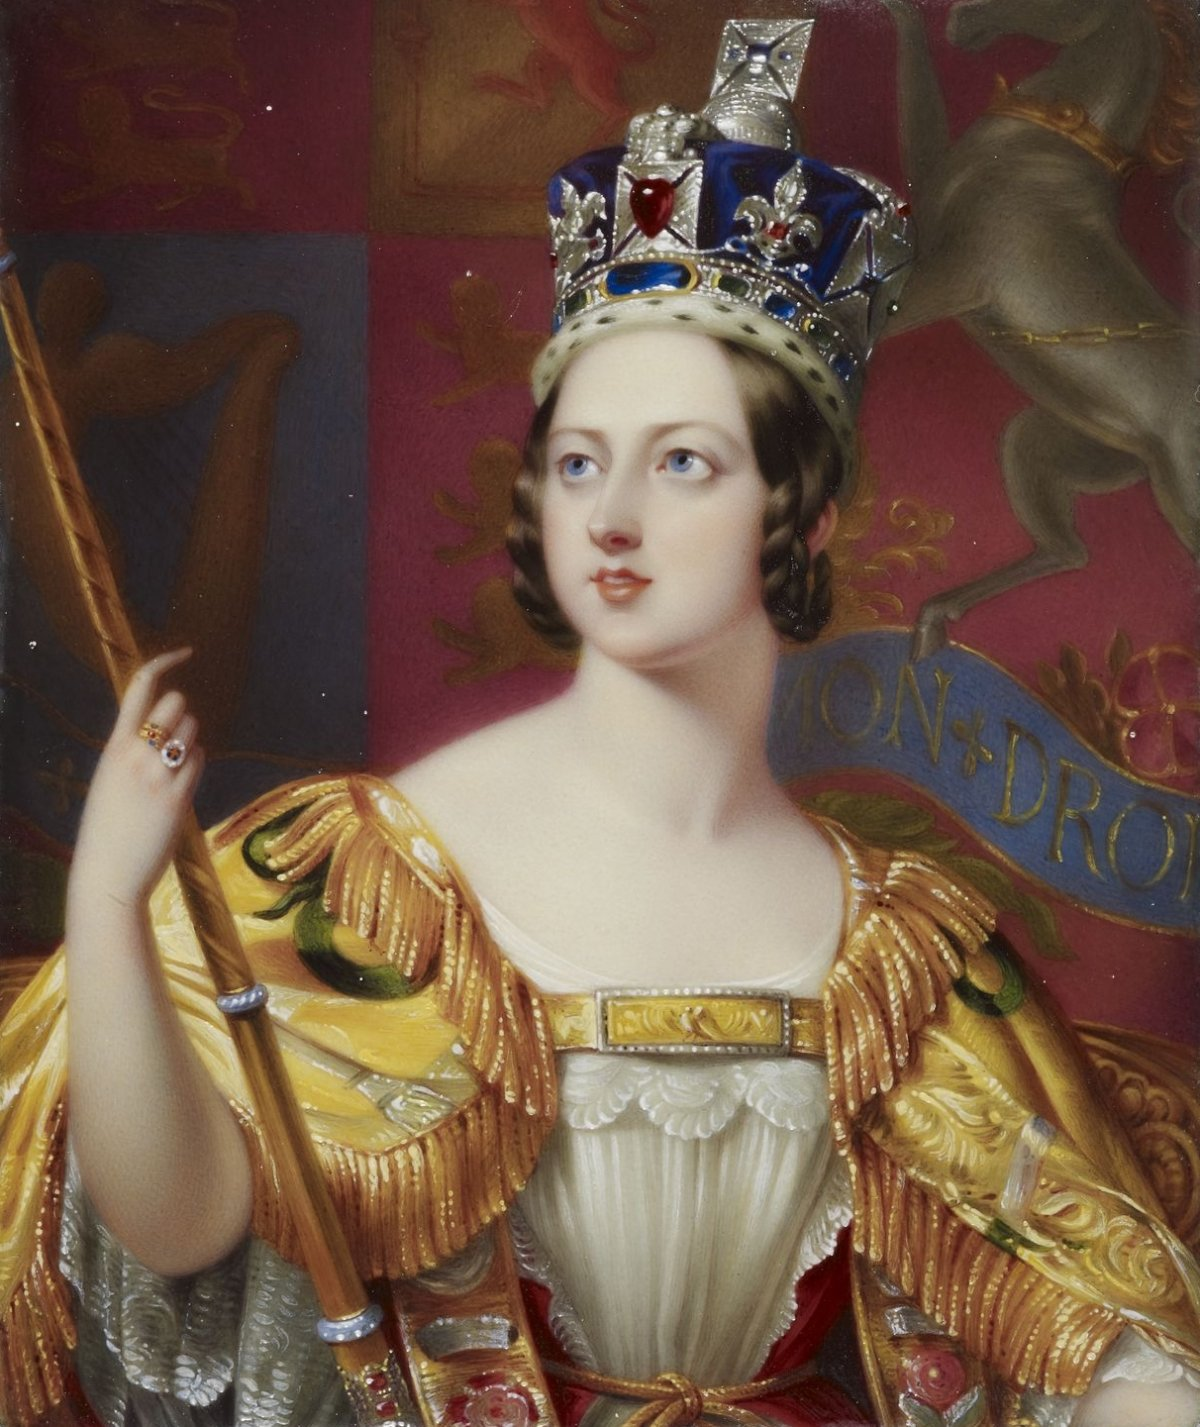 Portrait miniature of Hayter's 1838 state portrait of Queen Victoria. Part of the 'Bone Set of Enamels of the English Sovereigns and Queens from Edwd. III to Queen Victoria'